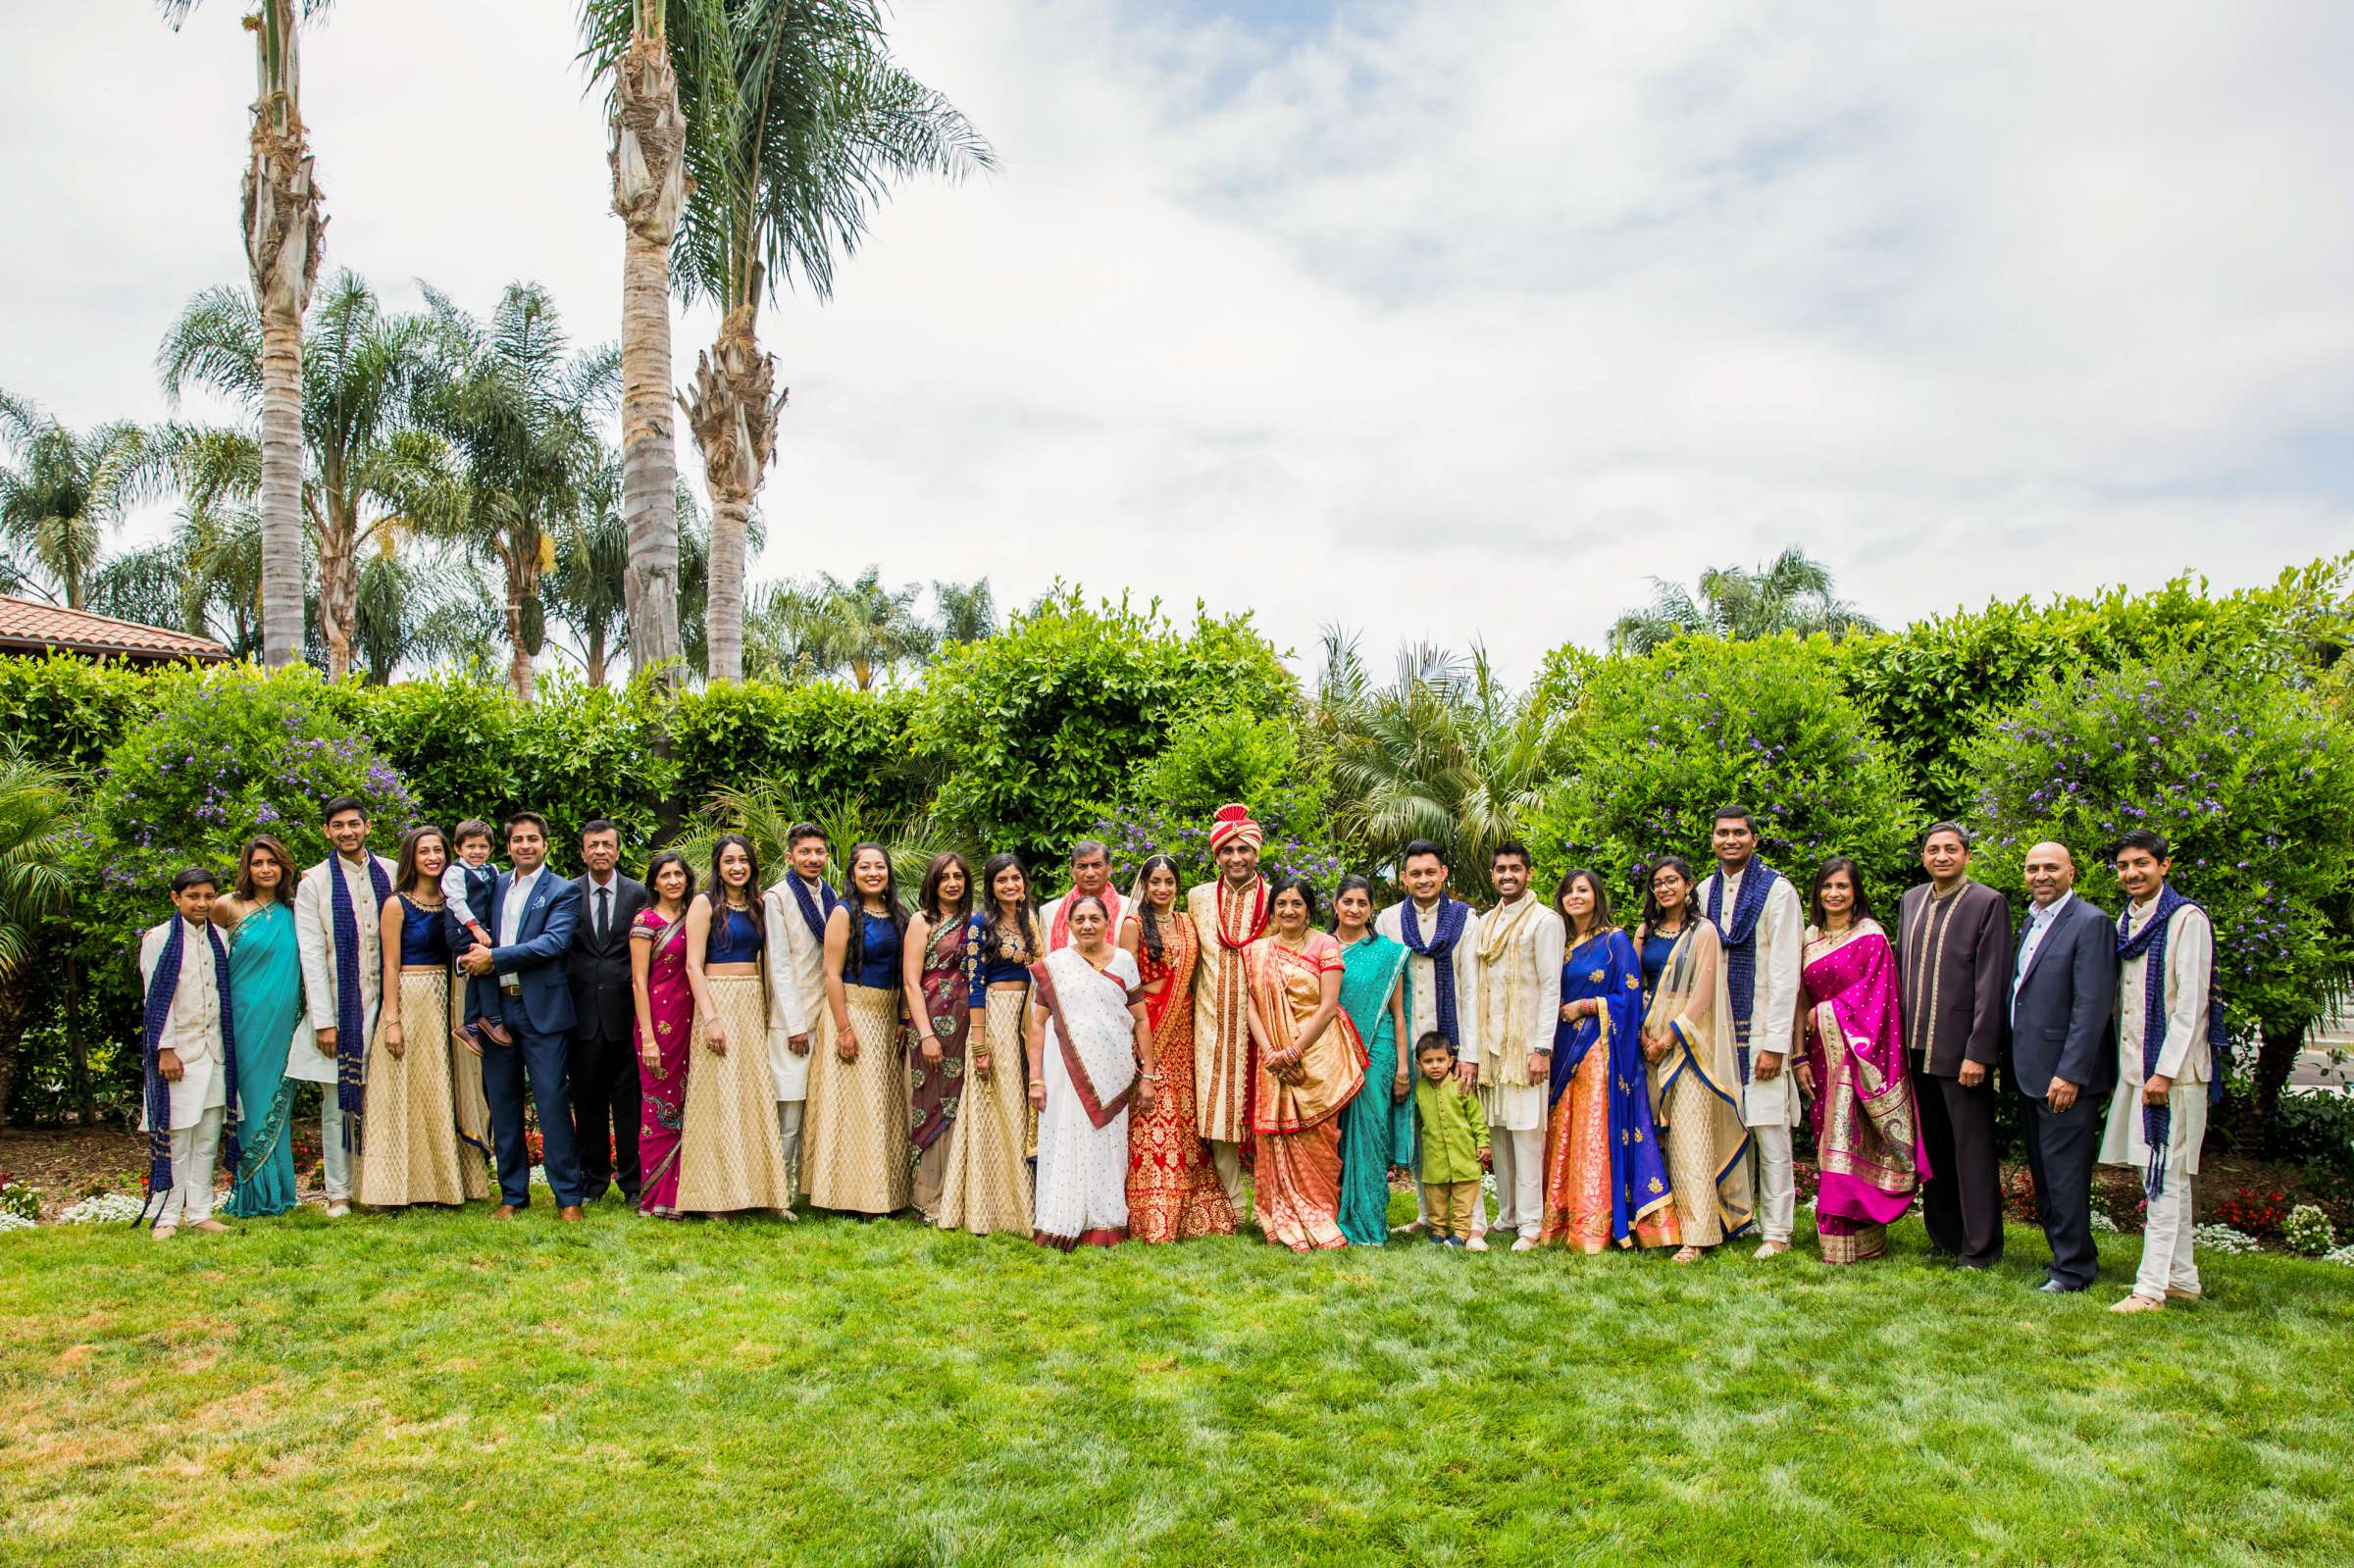 The Westin Carlsbad Resort and Spa Wedding coordinated by Shilpa Patel Events, Ami and Amit Wedding Photo #173 by True Photography